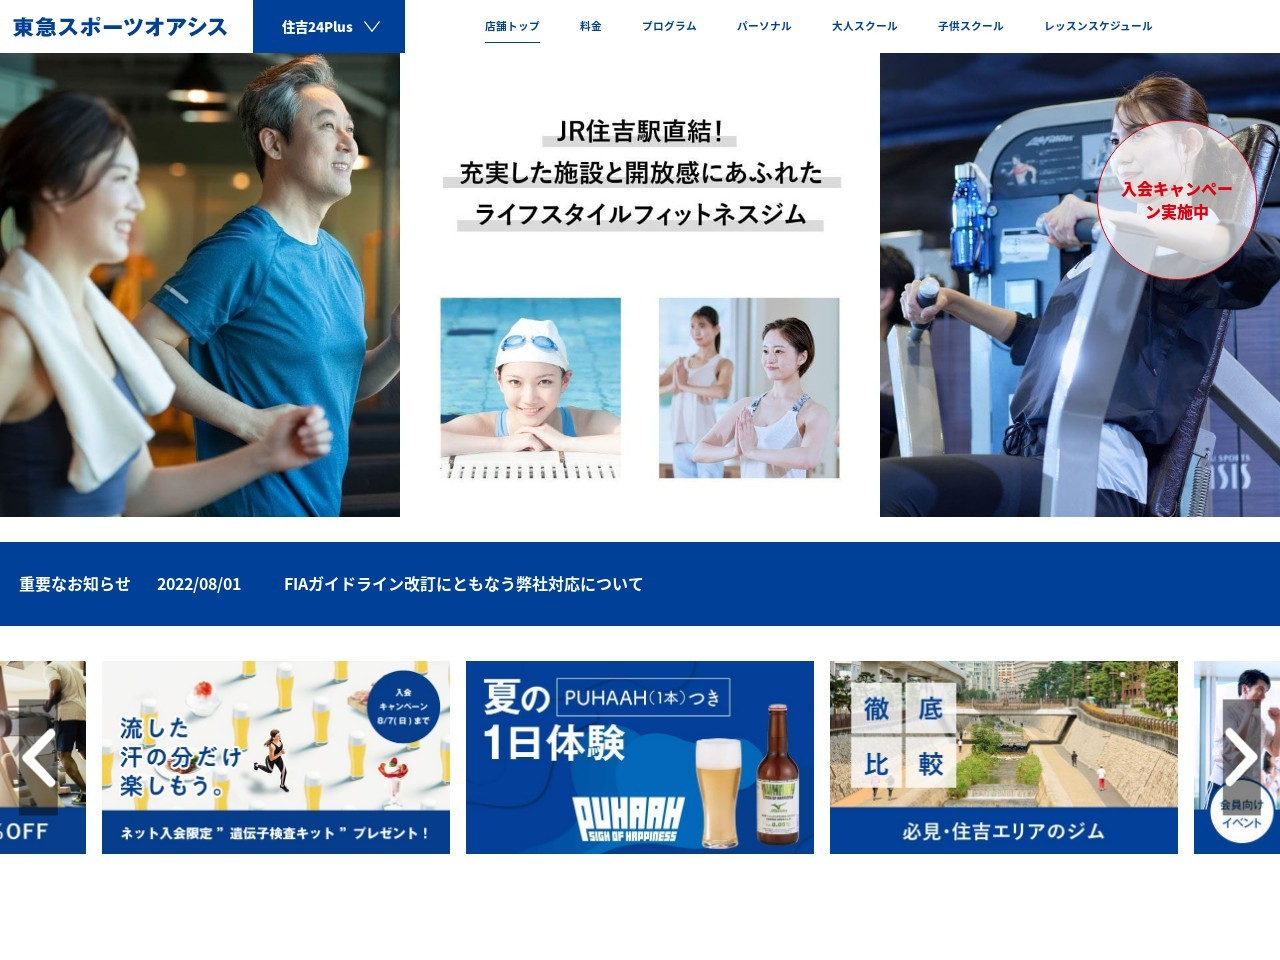 Oasis住吉のイメージ写真